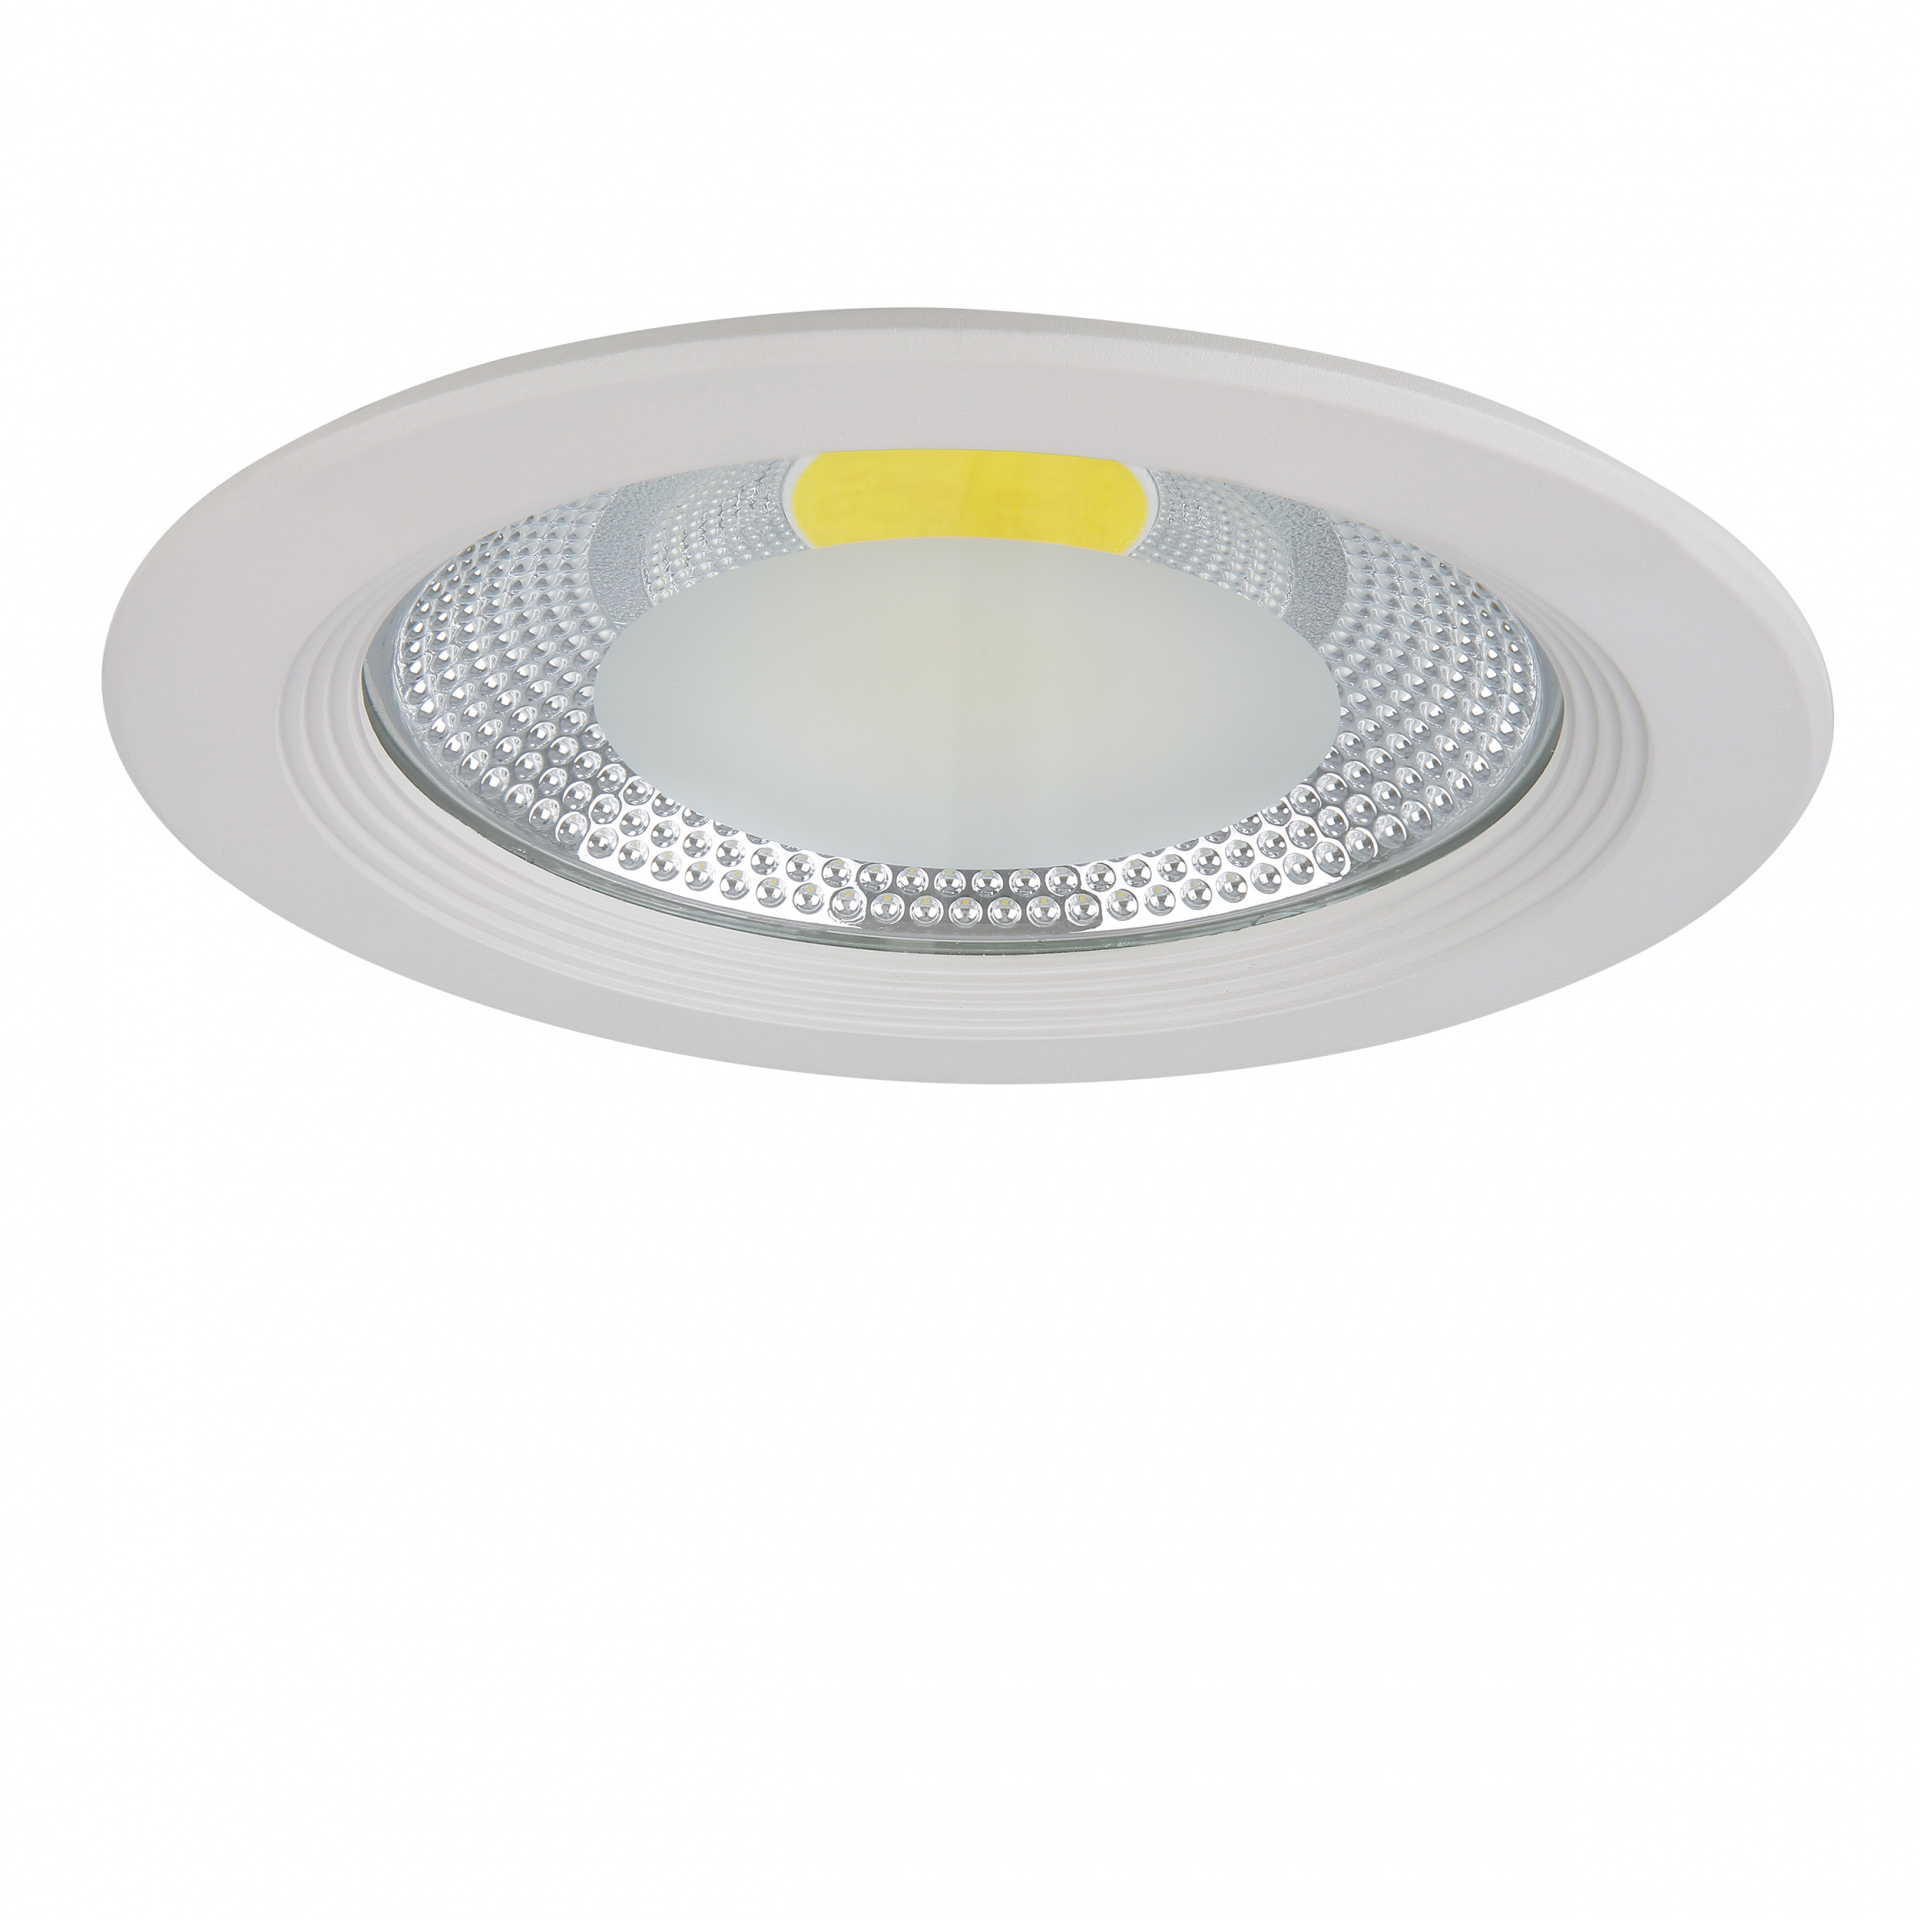 Светильник Forto LED 20W 1900LM 55G 4000K Lightstar 223204